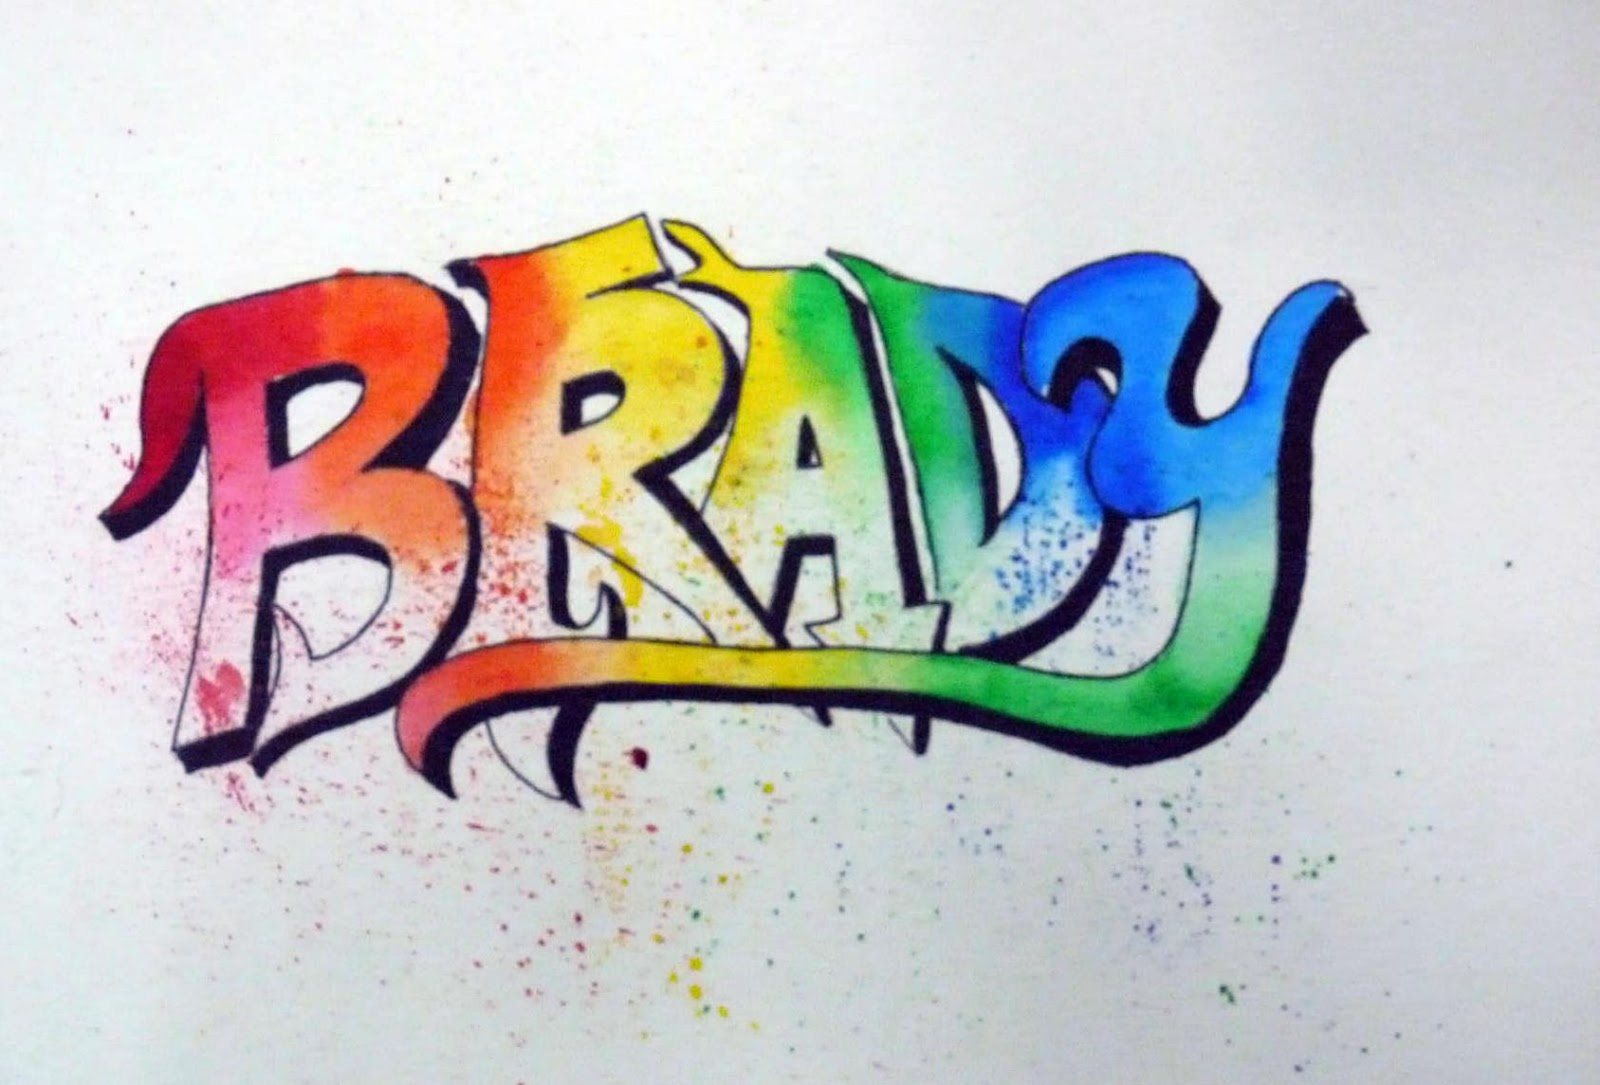 They Had To Design Their Own Graffiti Lettering And Write Their First And Last Name In This Unique Style Students Then Used Watercolor To Finish Their Tag